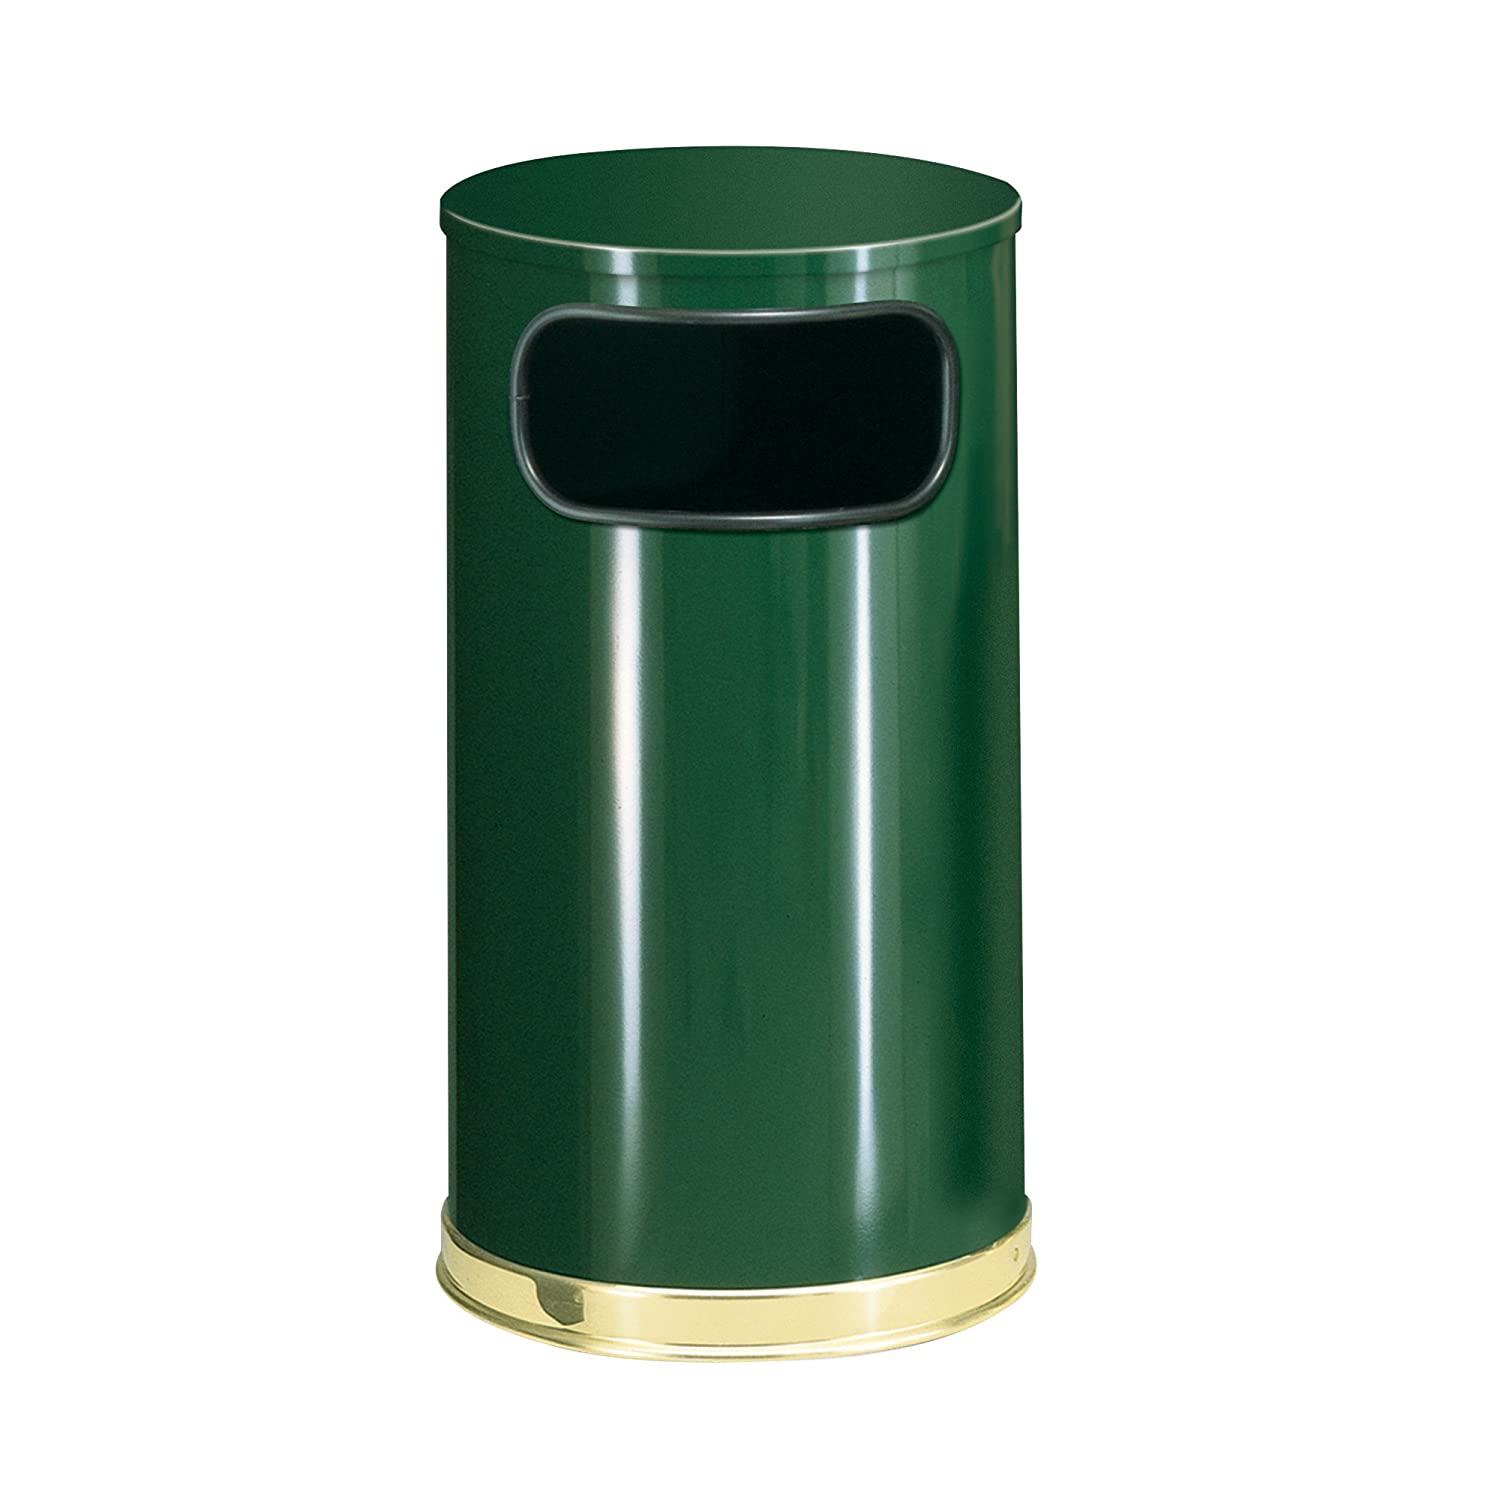 B001ANQT92 Rubbermaid Commercial Products FGSO1610GLEGN Side Open Refuse Container, Round, 12 gal 71p4BQCUX-L._SL1500_